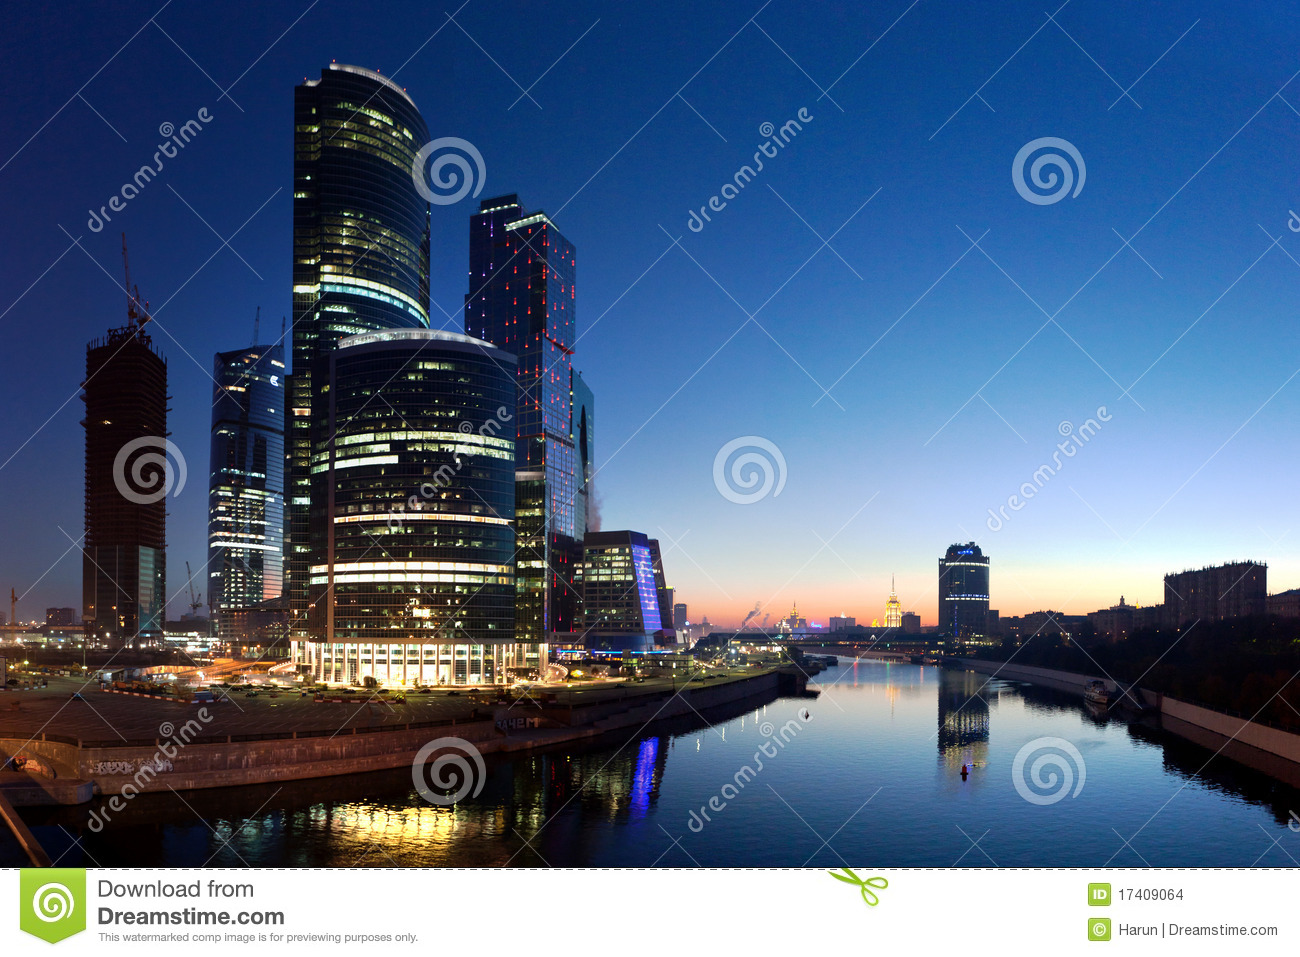 Moscow-city business center